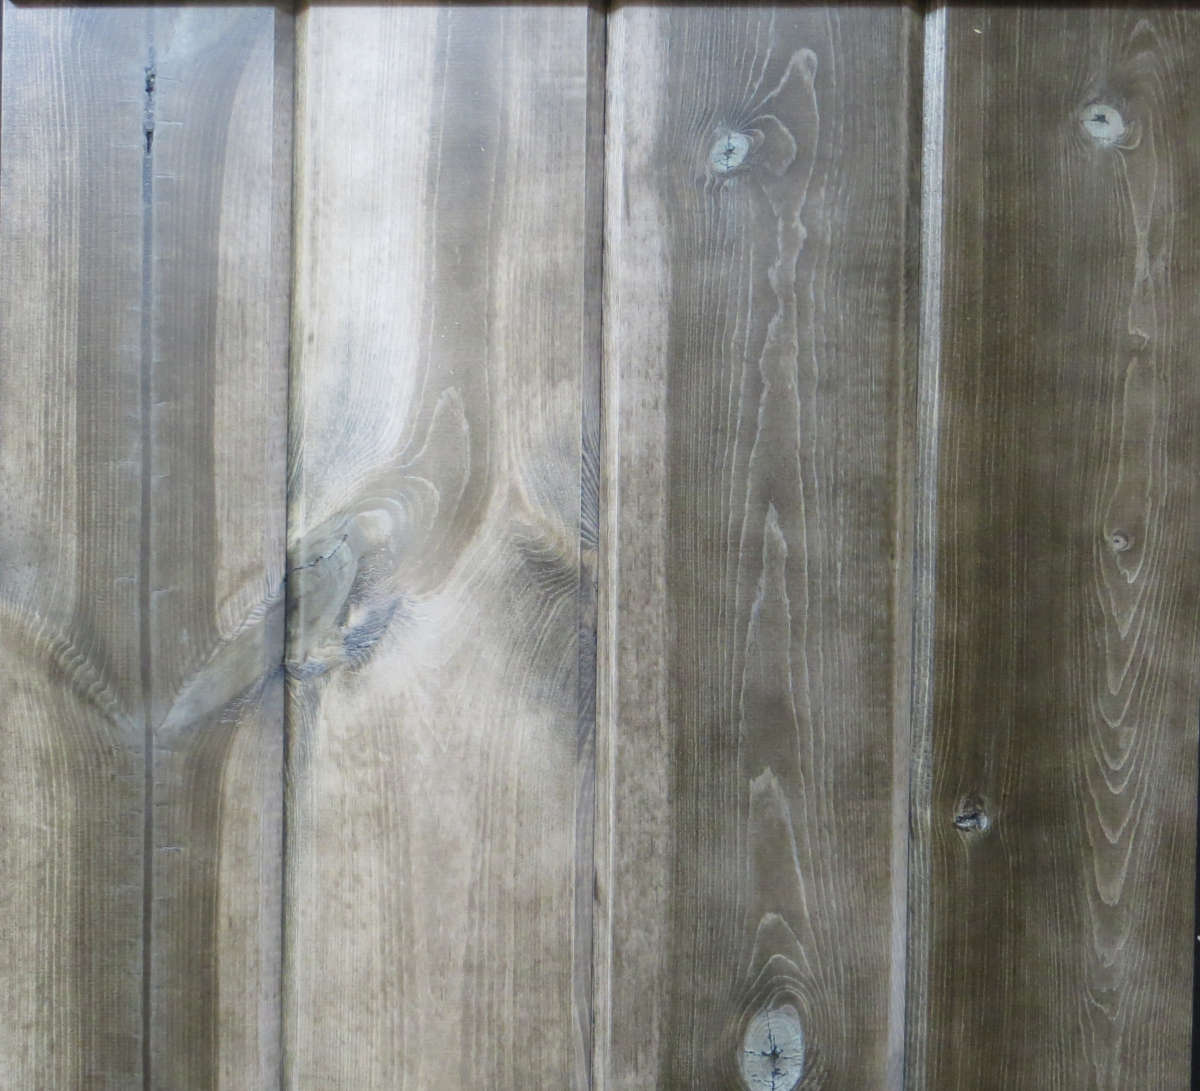 Wicked Wood Pine Paneling - WEATHERED BROWN - Stain plus 2 Clear Coats  (BL13-40)